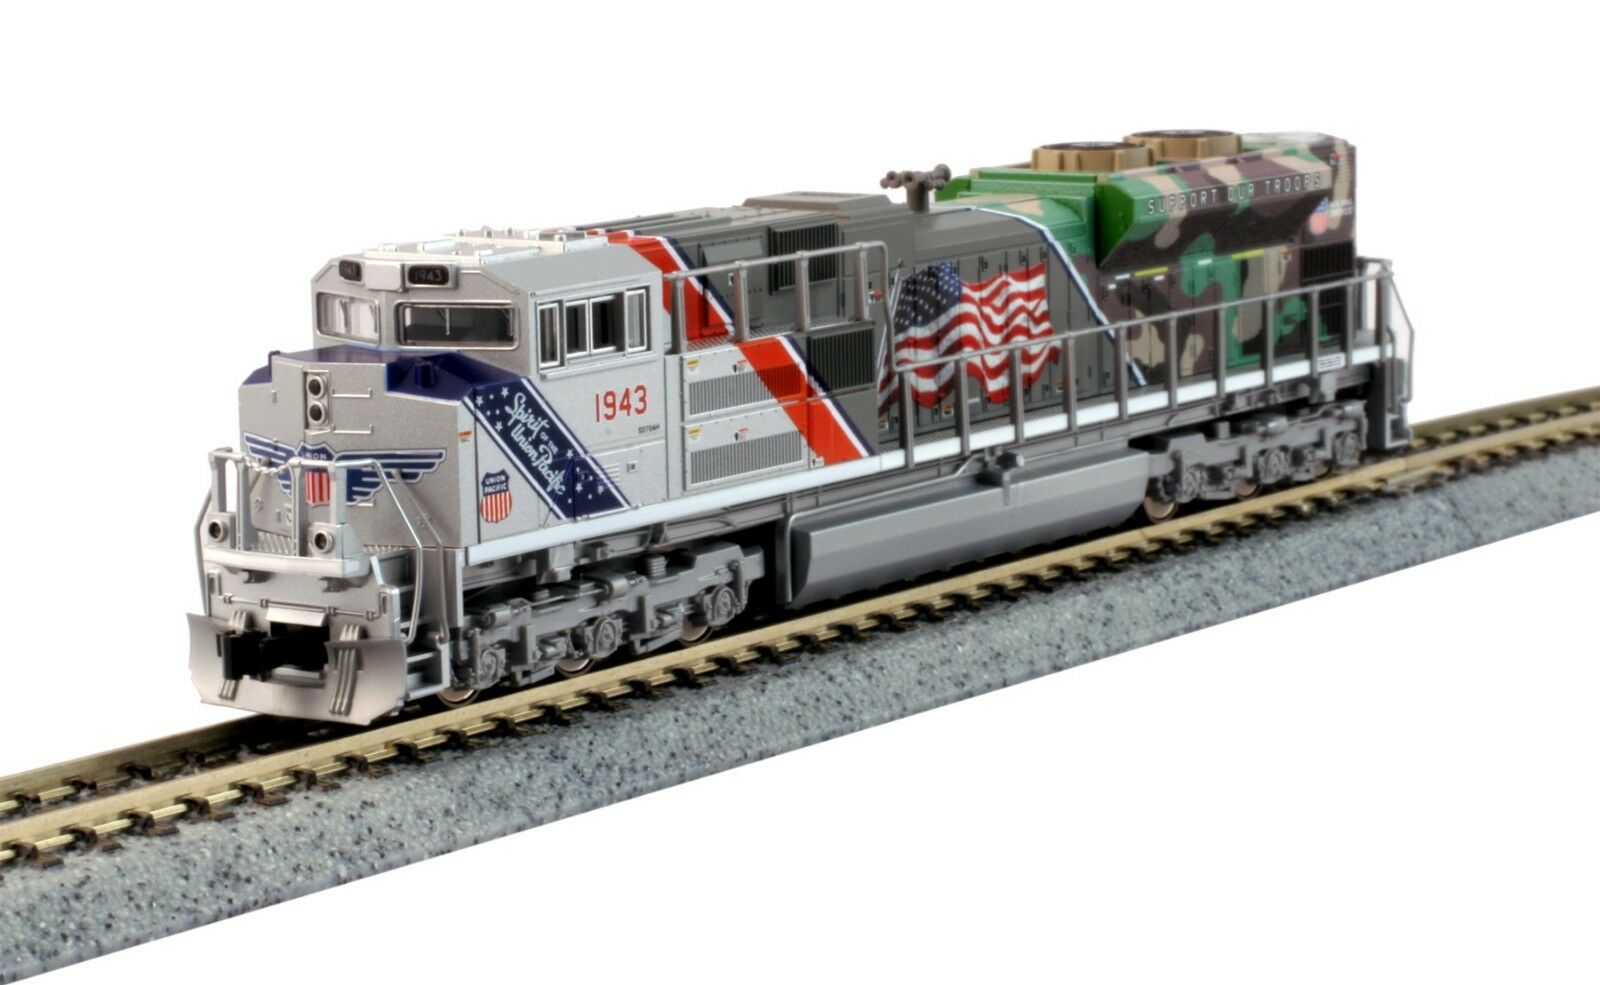 SCALA NKato 1761943 Union Pacific SD70ACe THE Spirit   1943 DCC READY